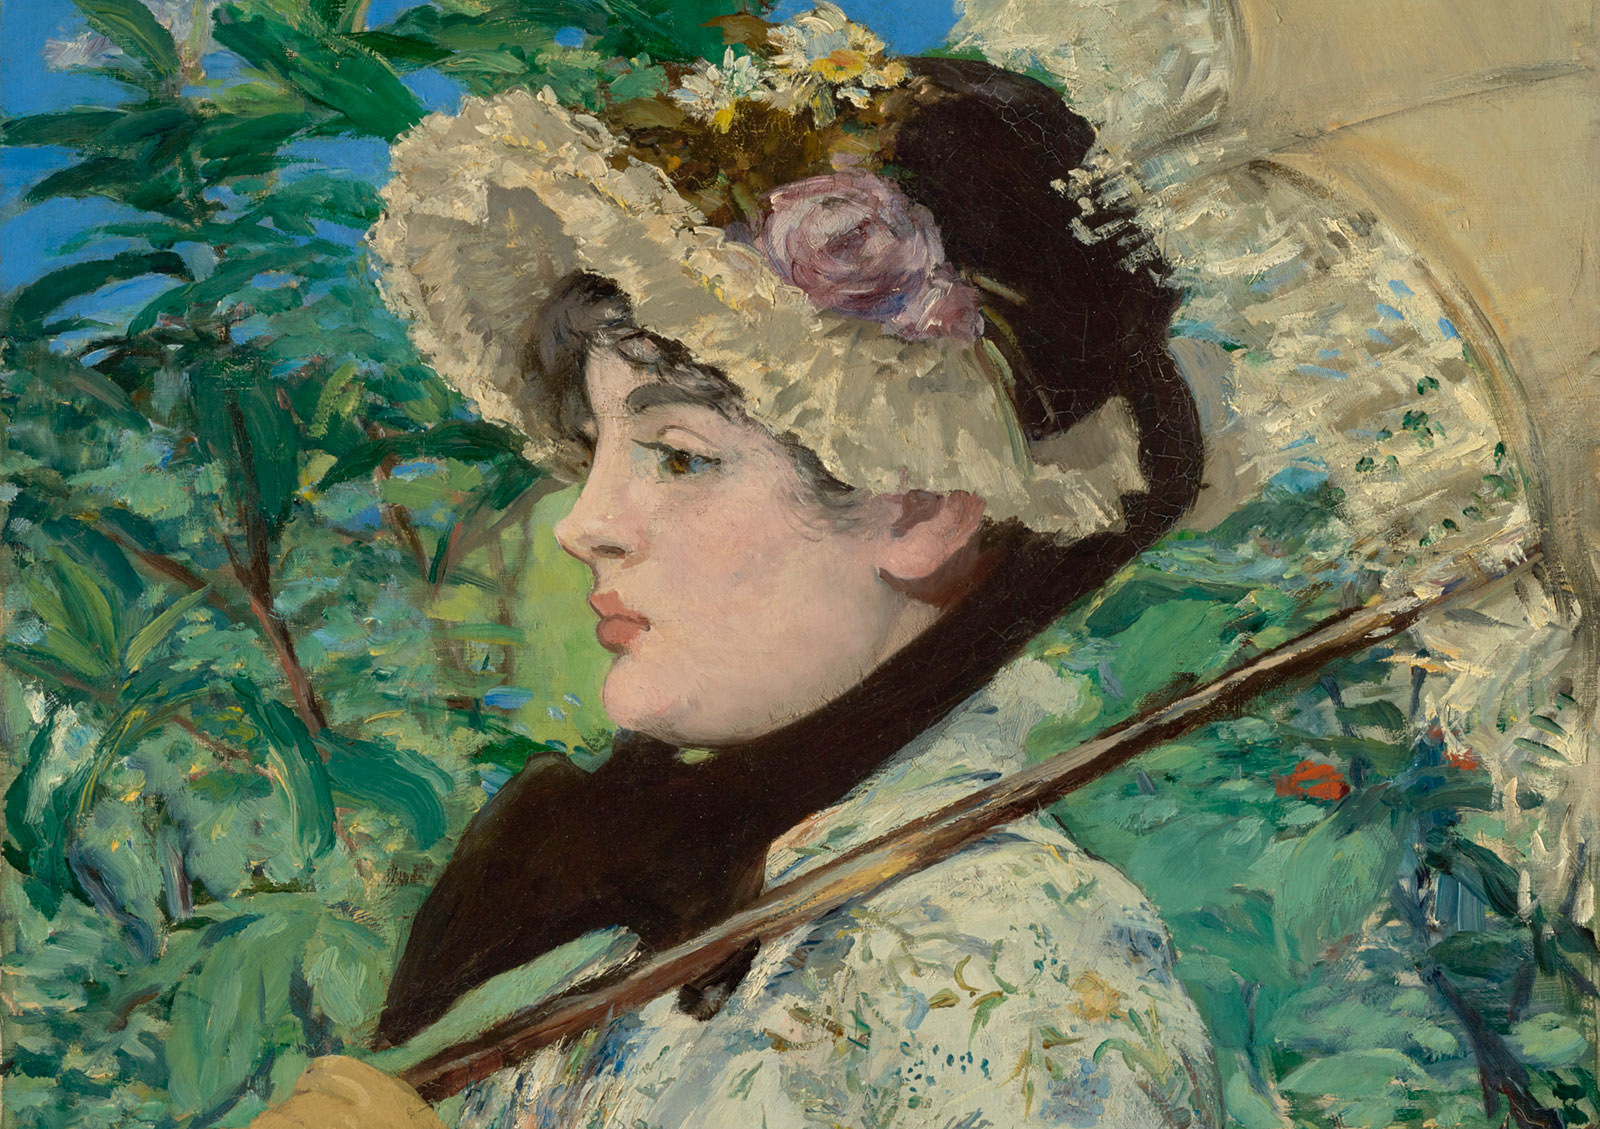 Detail of a painting showing a woman in profile, holding a parasol and wearing a lacy hat, against a backdrop of garden foliage